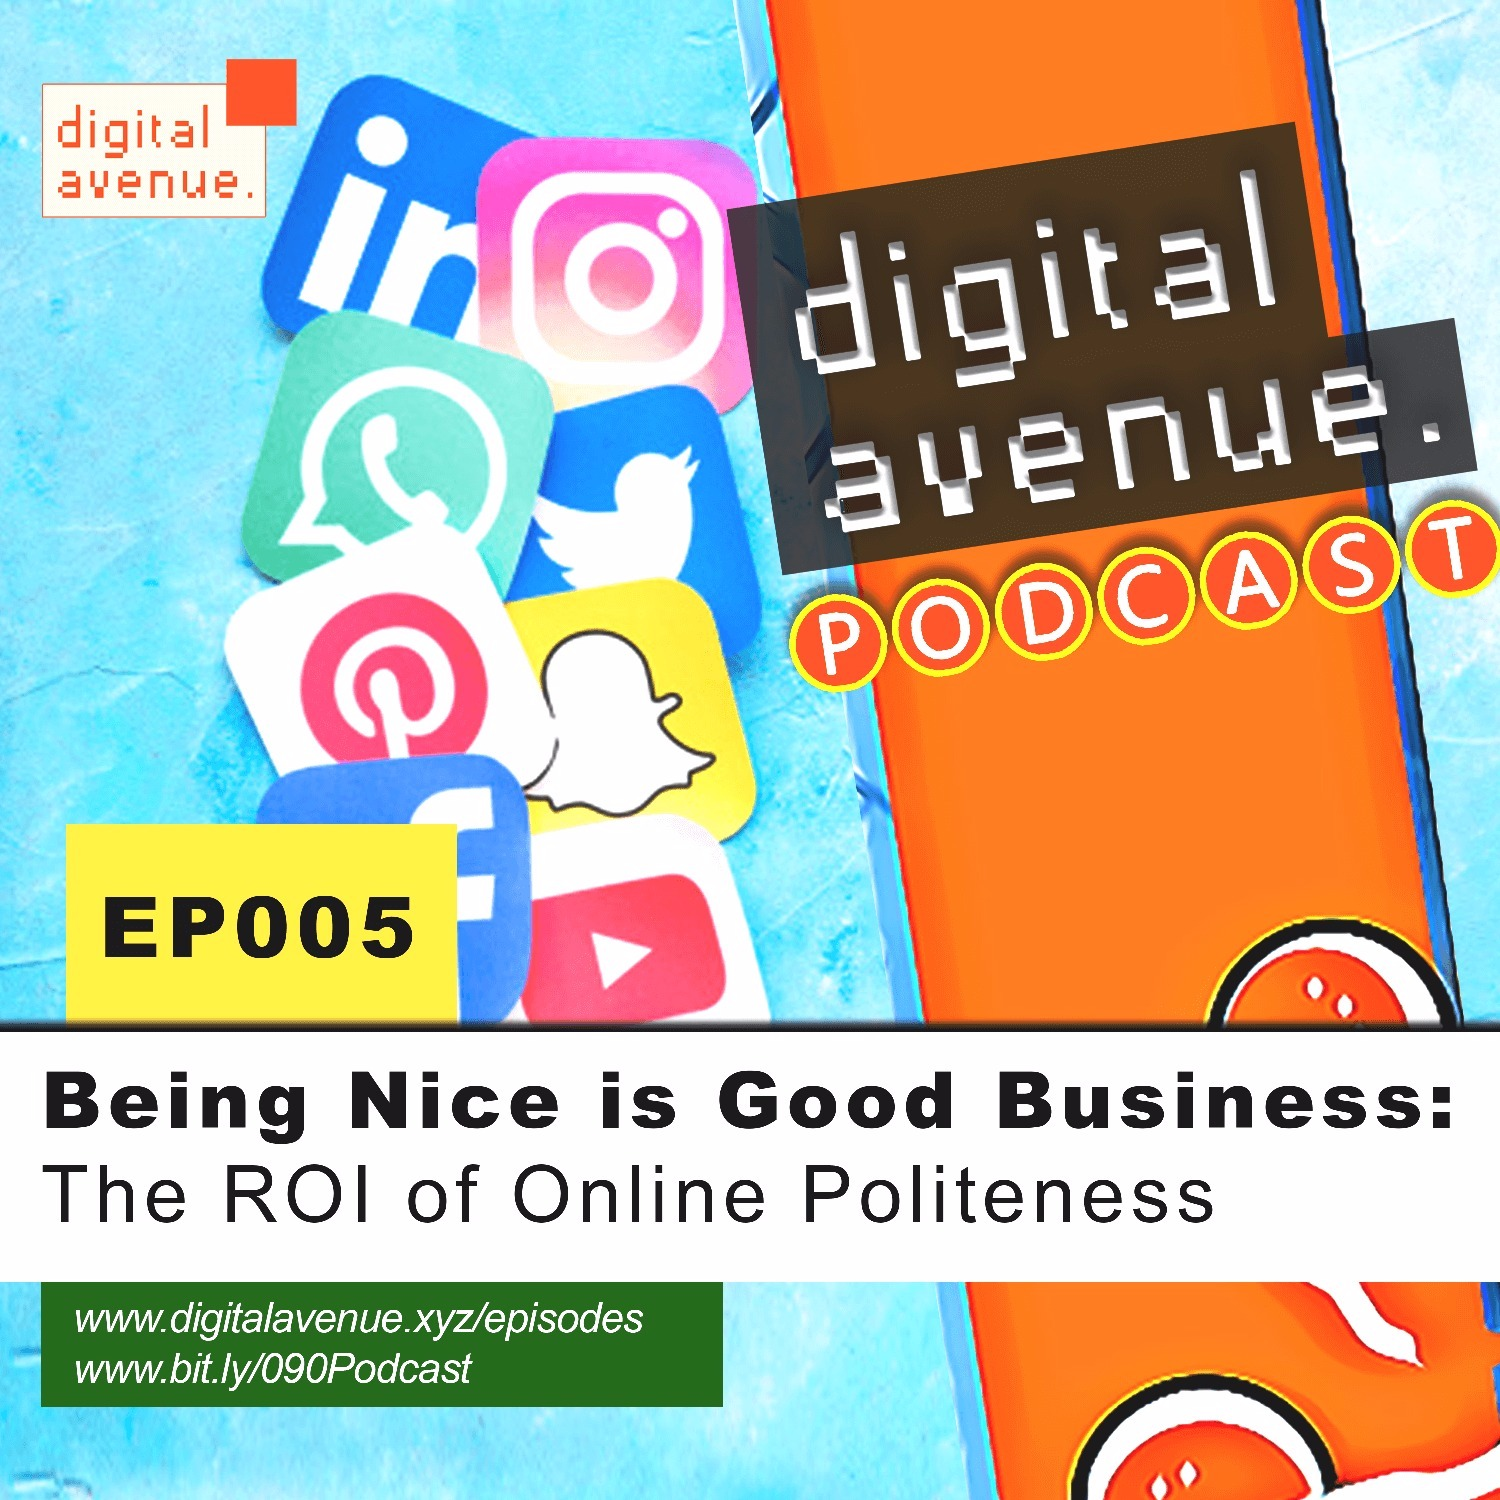 Being Nice is Good Business-The ROI of Online Politeness